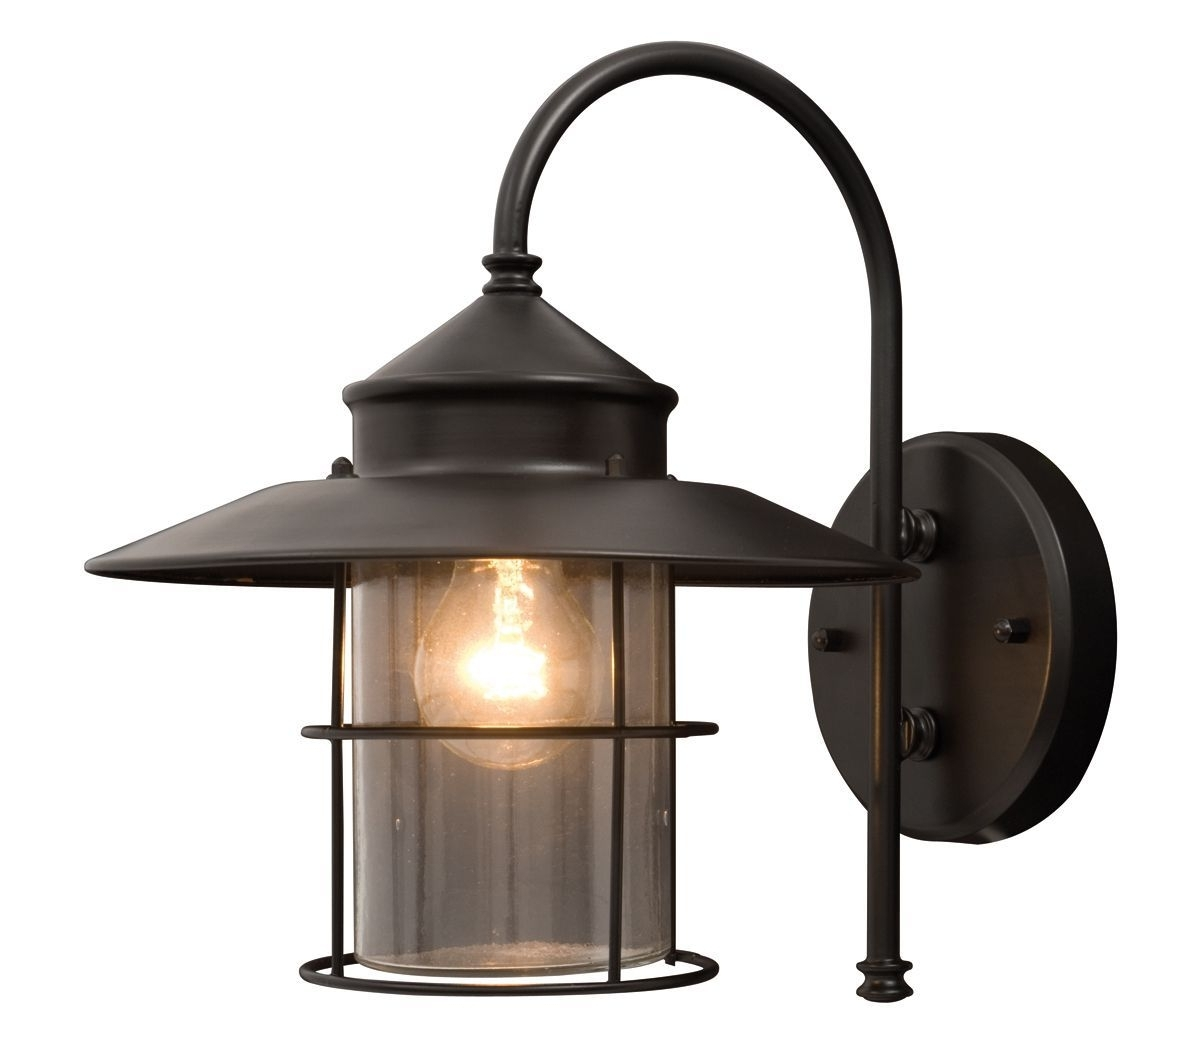 Lights, Walls Throughout Outdoor Mains Lanterns (View 8 of 20)